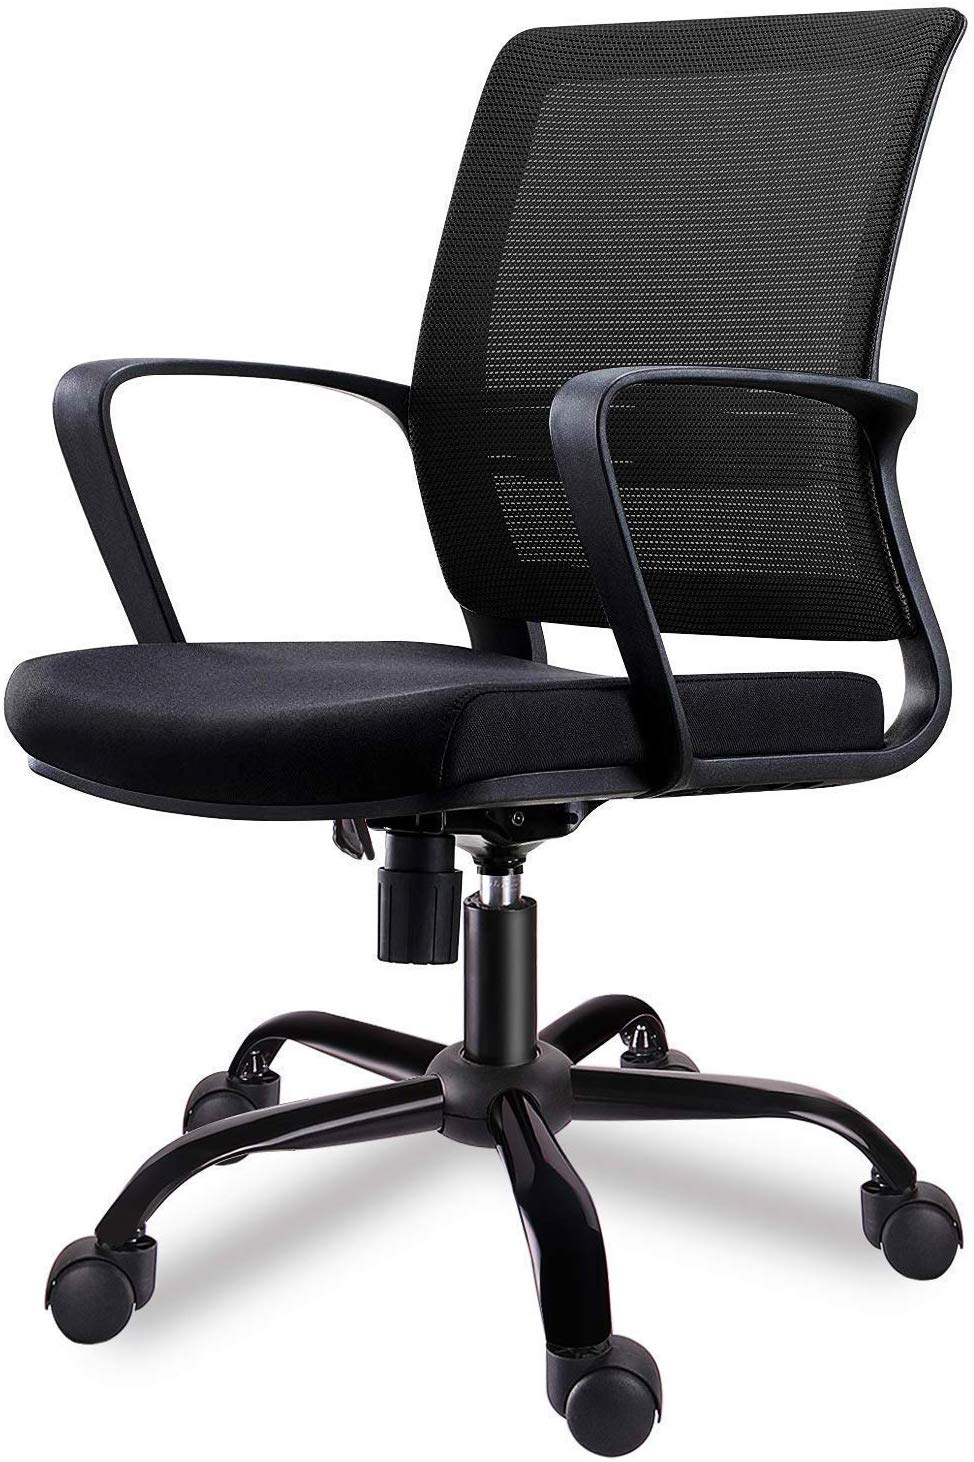 SMUGDESK Mid-Back Big Ergonomic Office Lumbar Support Mesh Computer Desk Task Chair with Armrests